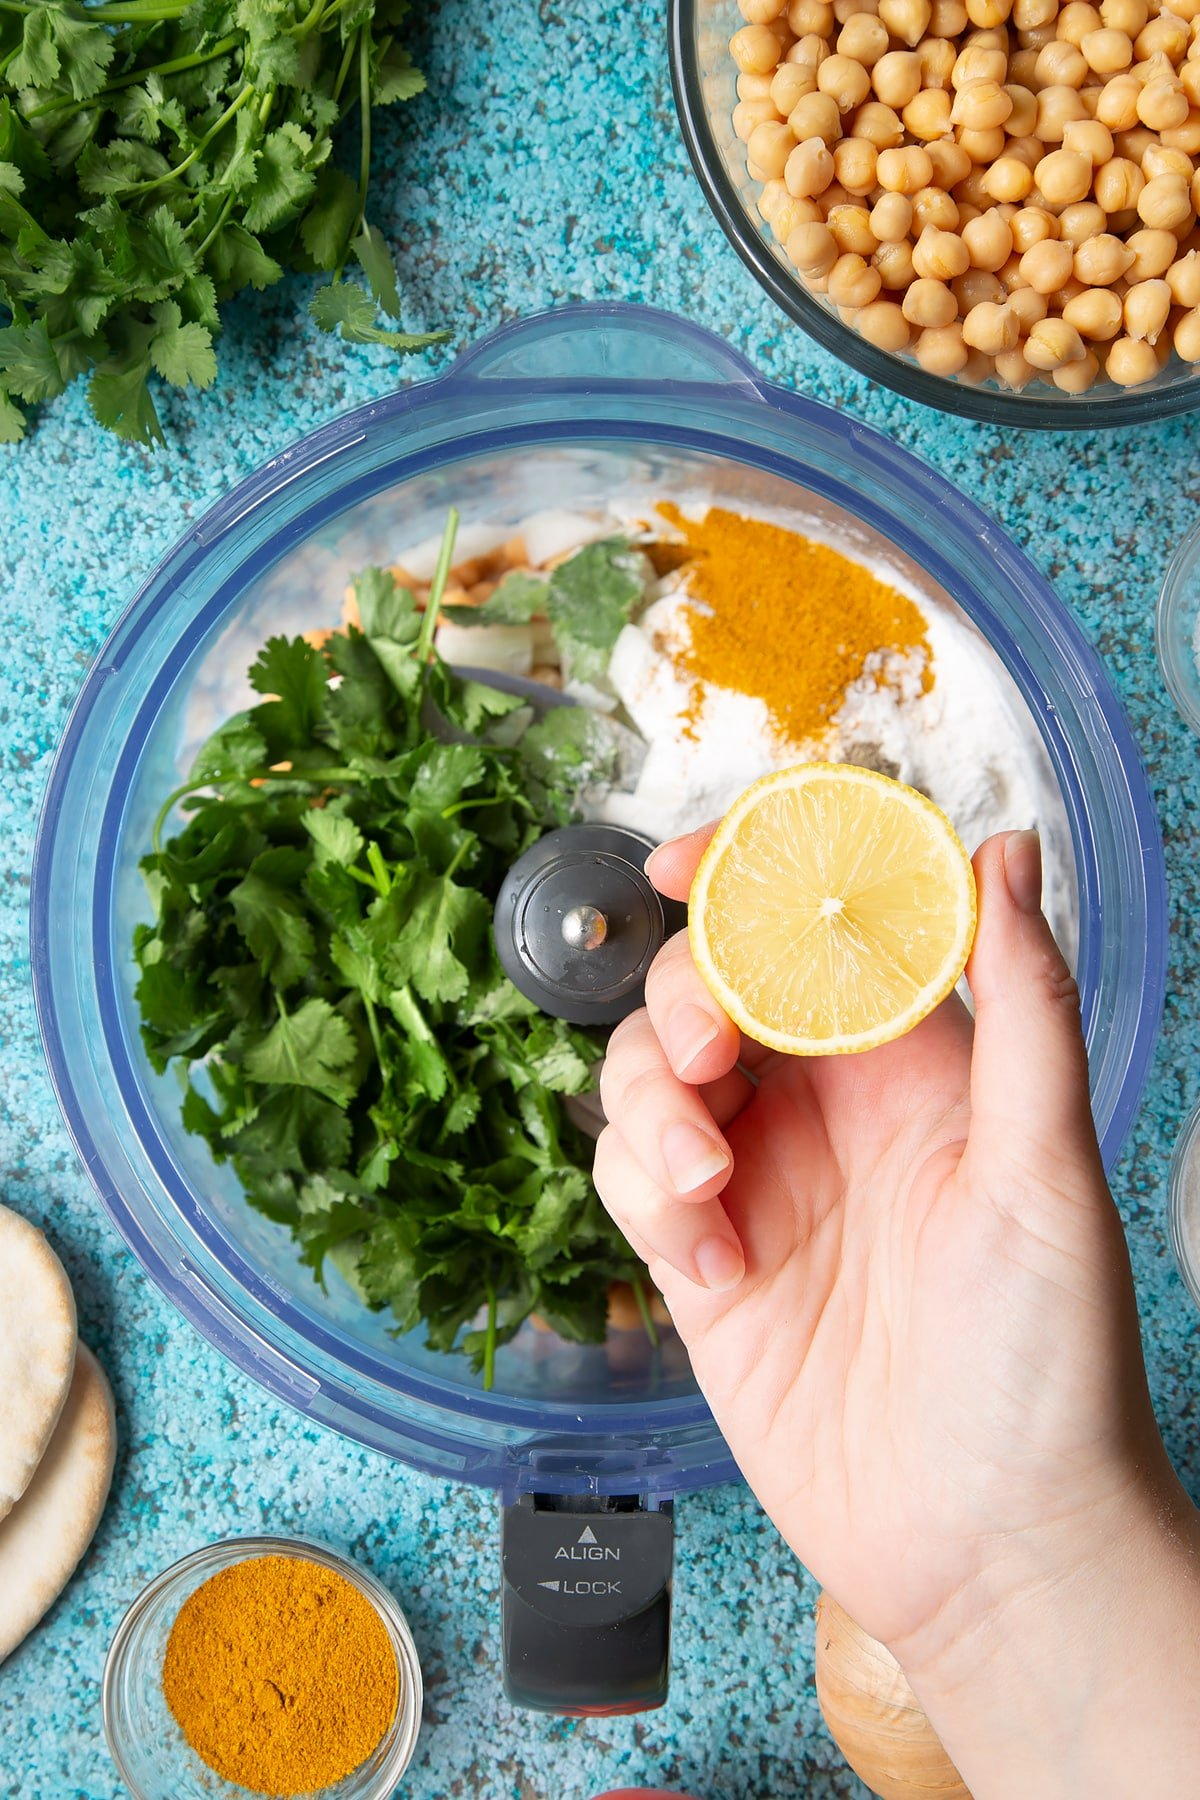 A hold holds a lemon half above chickpeas, onion, garlic, fresh coriander, gluten free flour, curry powder, salt and pepper in a food processor bowl. Ingredients to make gluten-free falafel surround the bowl.